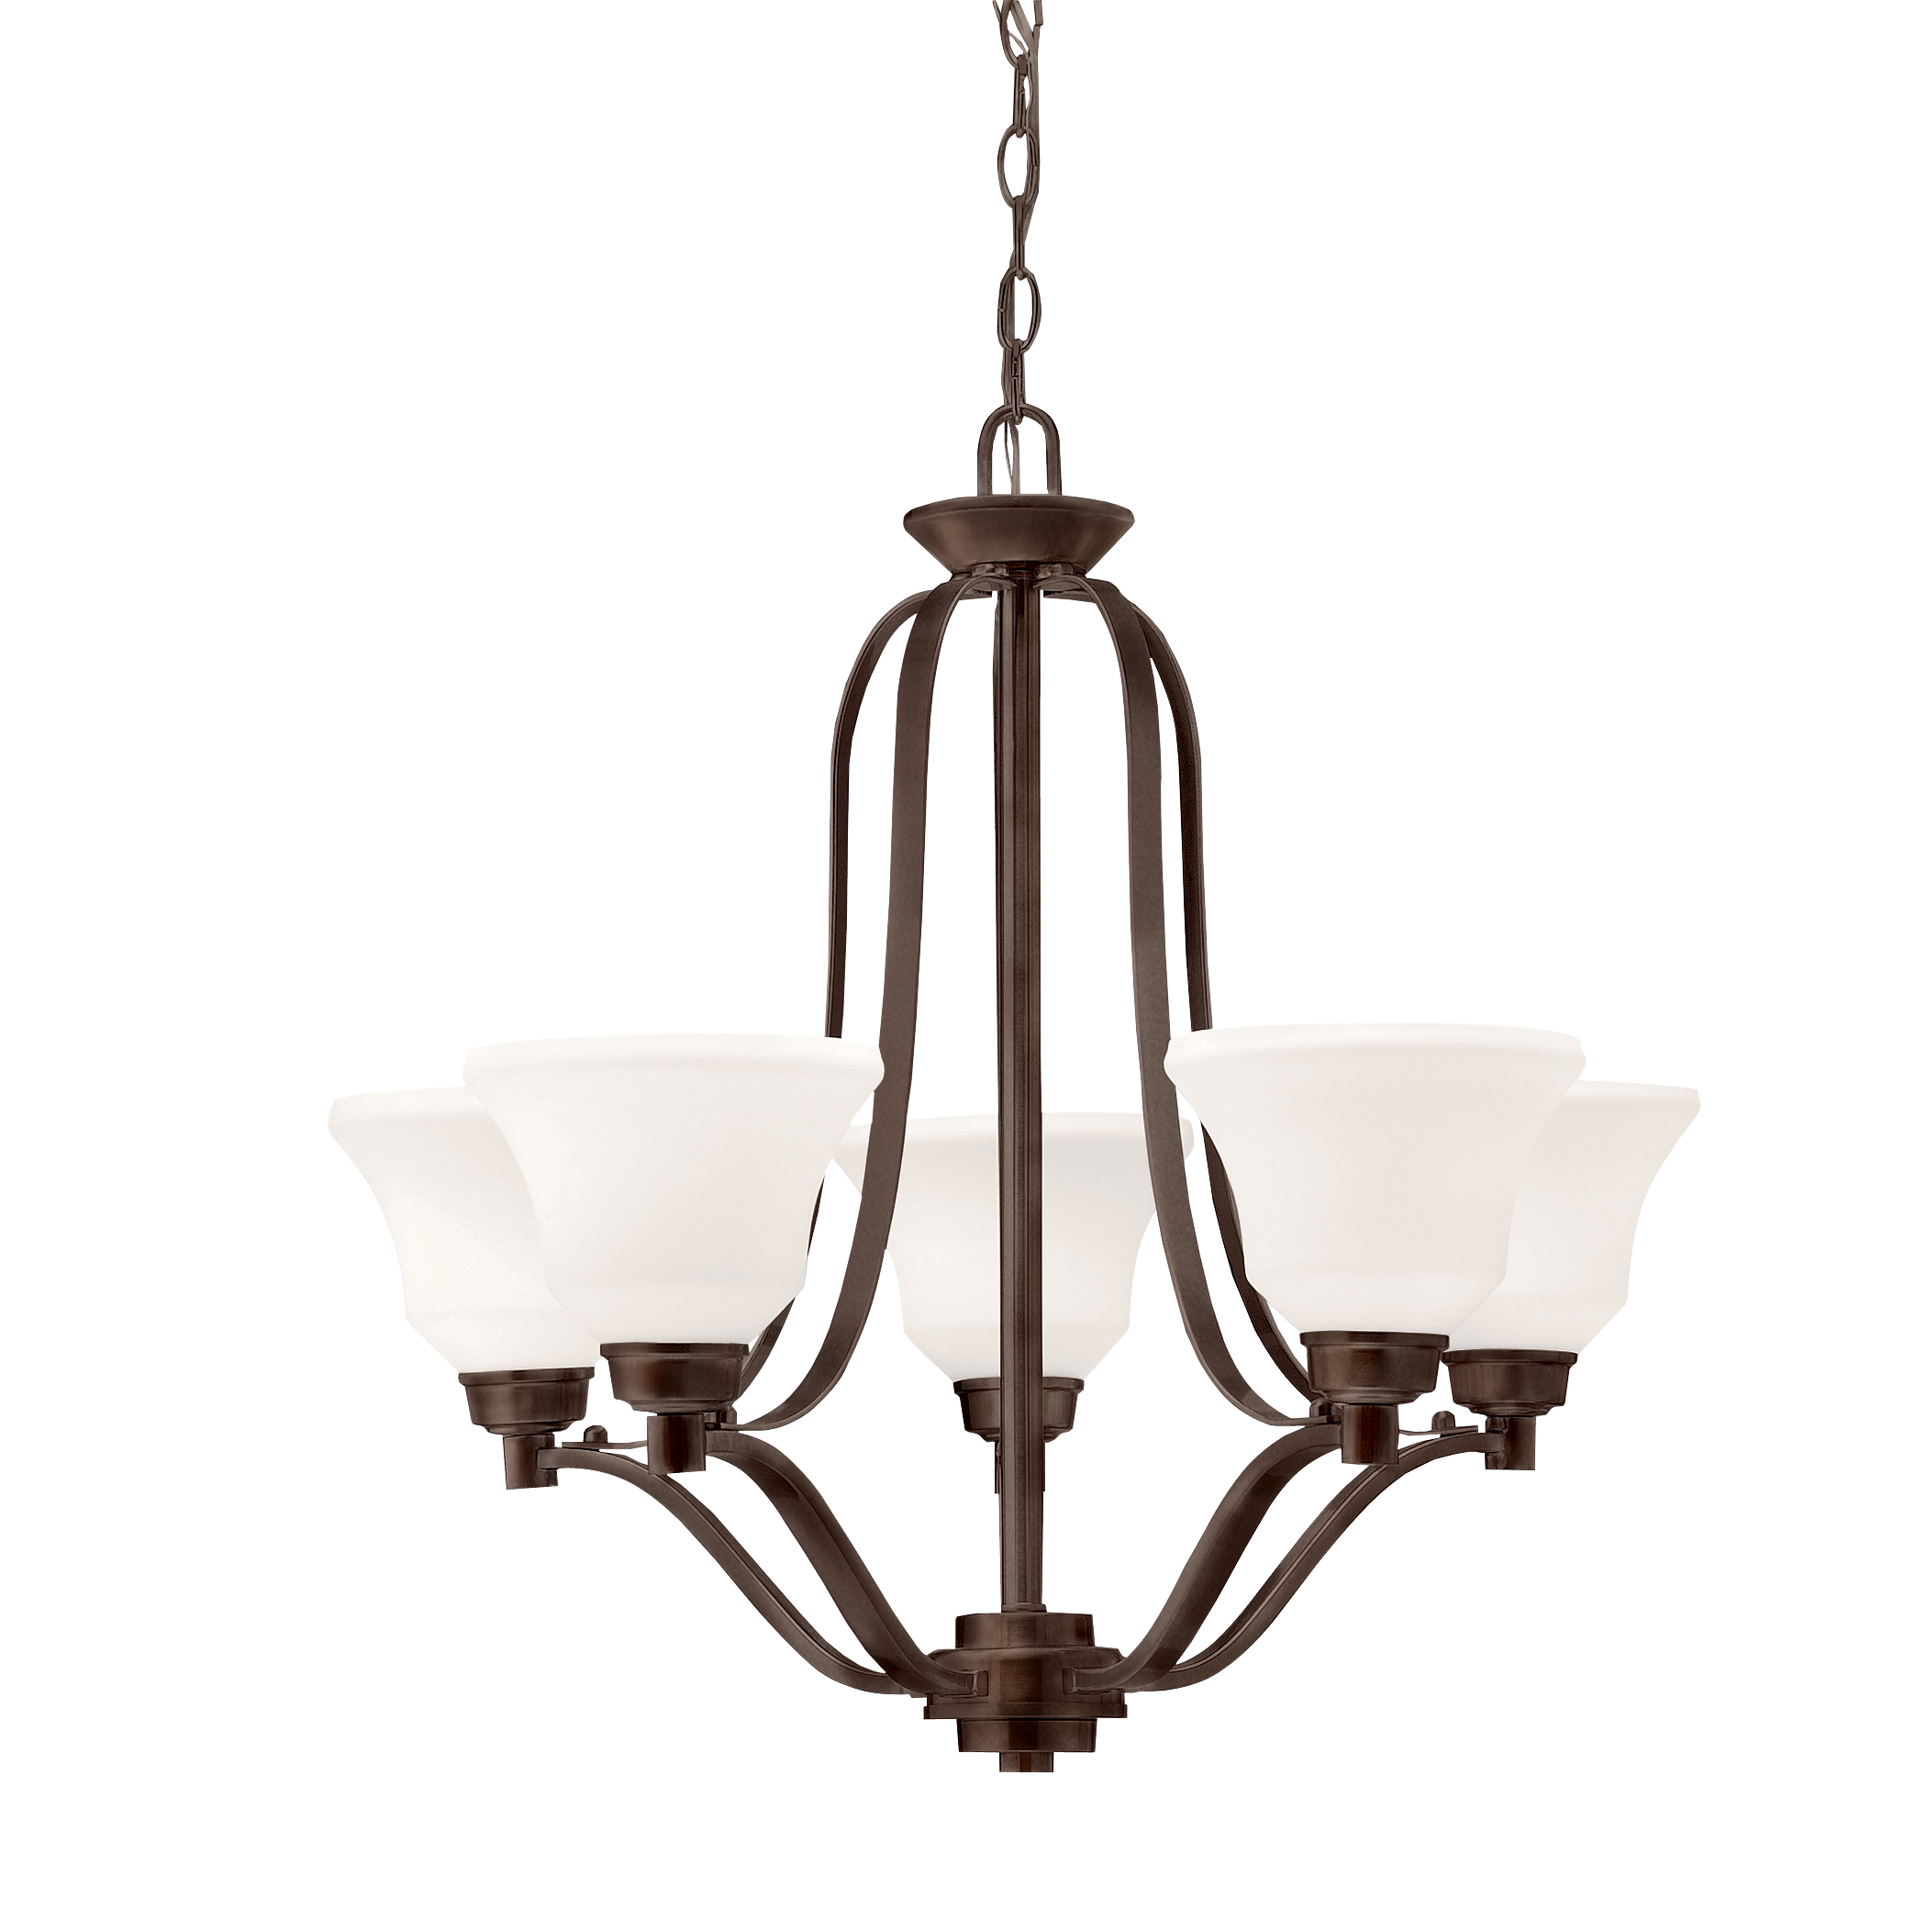 Kichler Langford LED Chandelier with White Etched White Shade - Olde Bronze (1783OZL16)